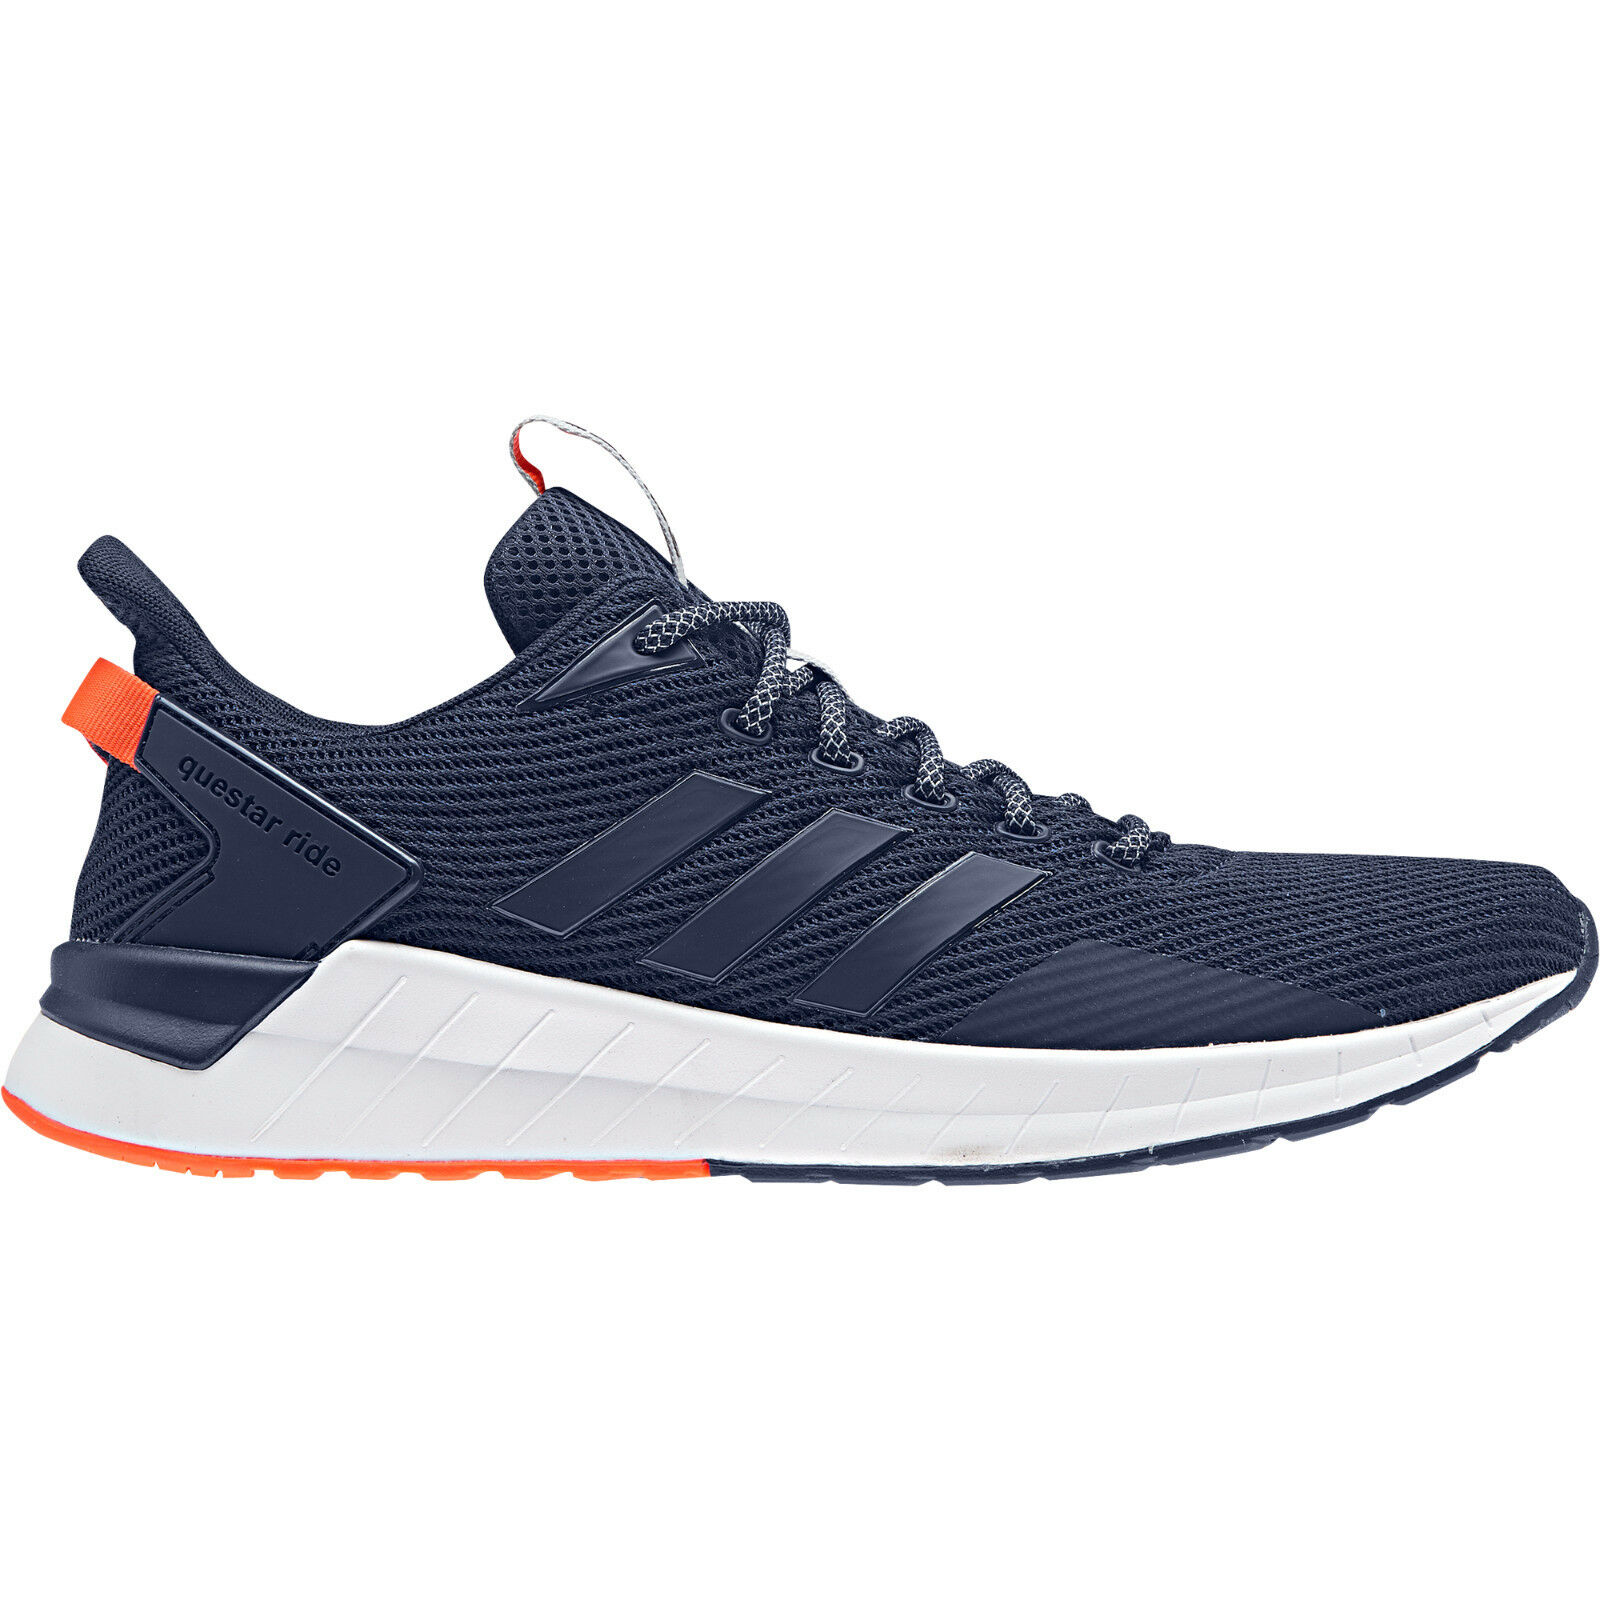 Adidas shoes da men Questar Ride Corsa,Allenamento Fitness Moda B44807